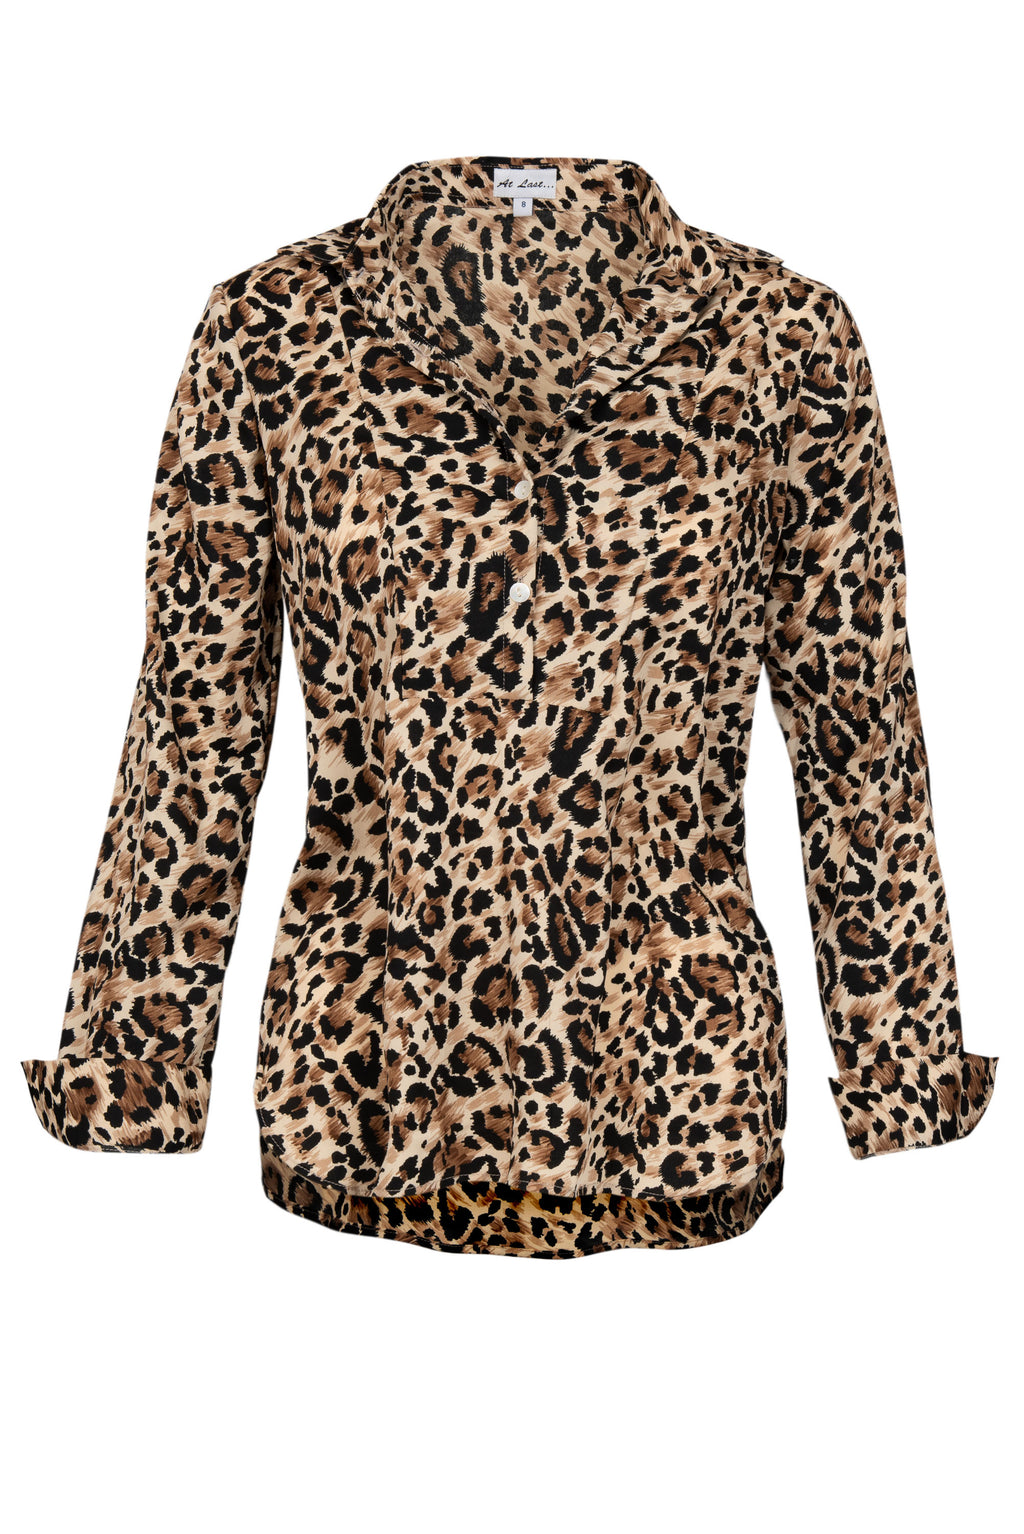 Soho Shirt with Back Detail - Leopard